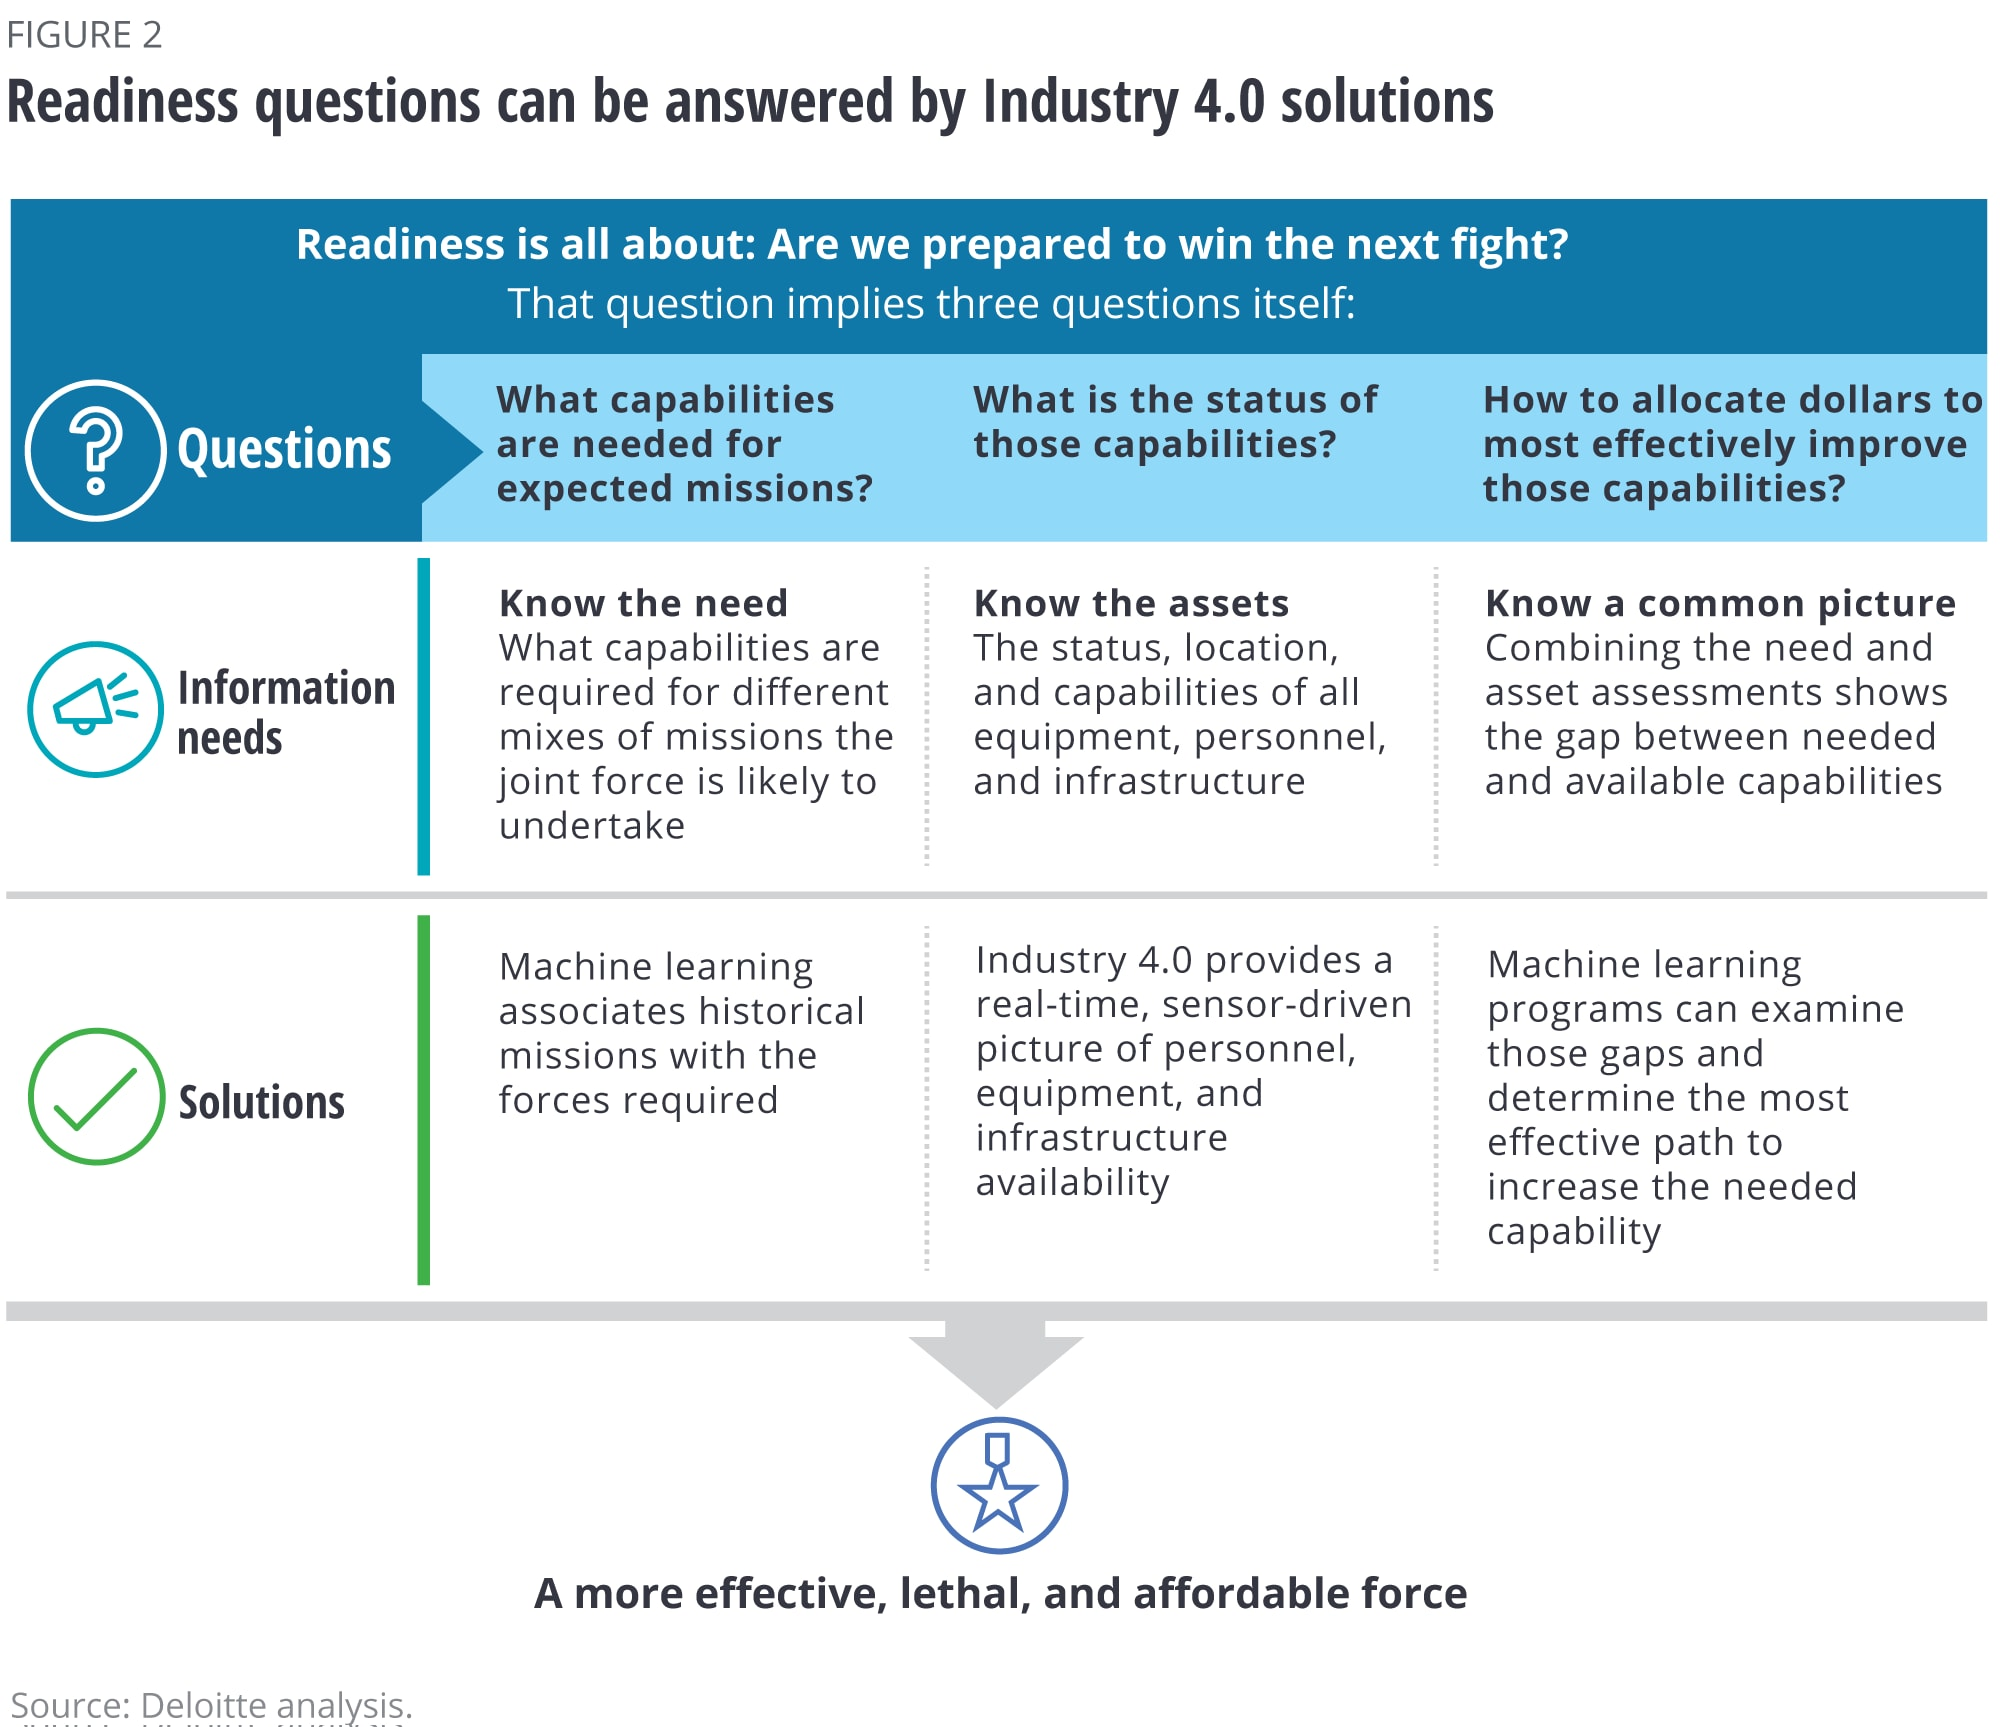 Readiness questions can be answered by Industry 4.0 solutions